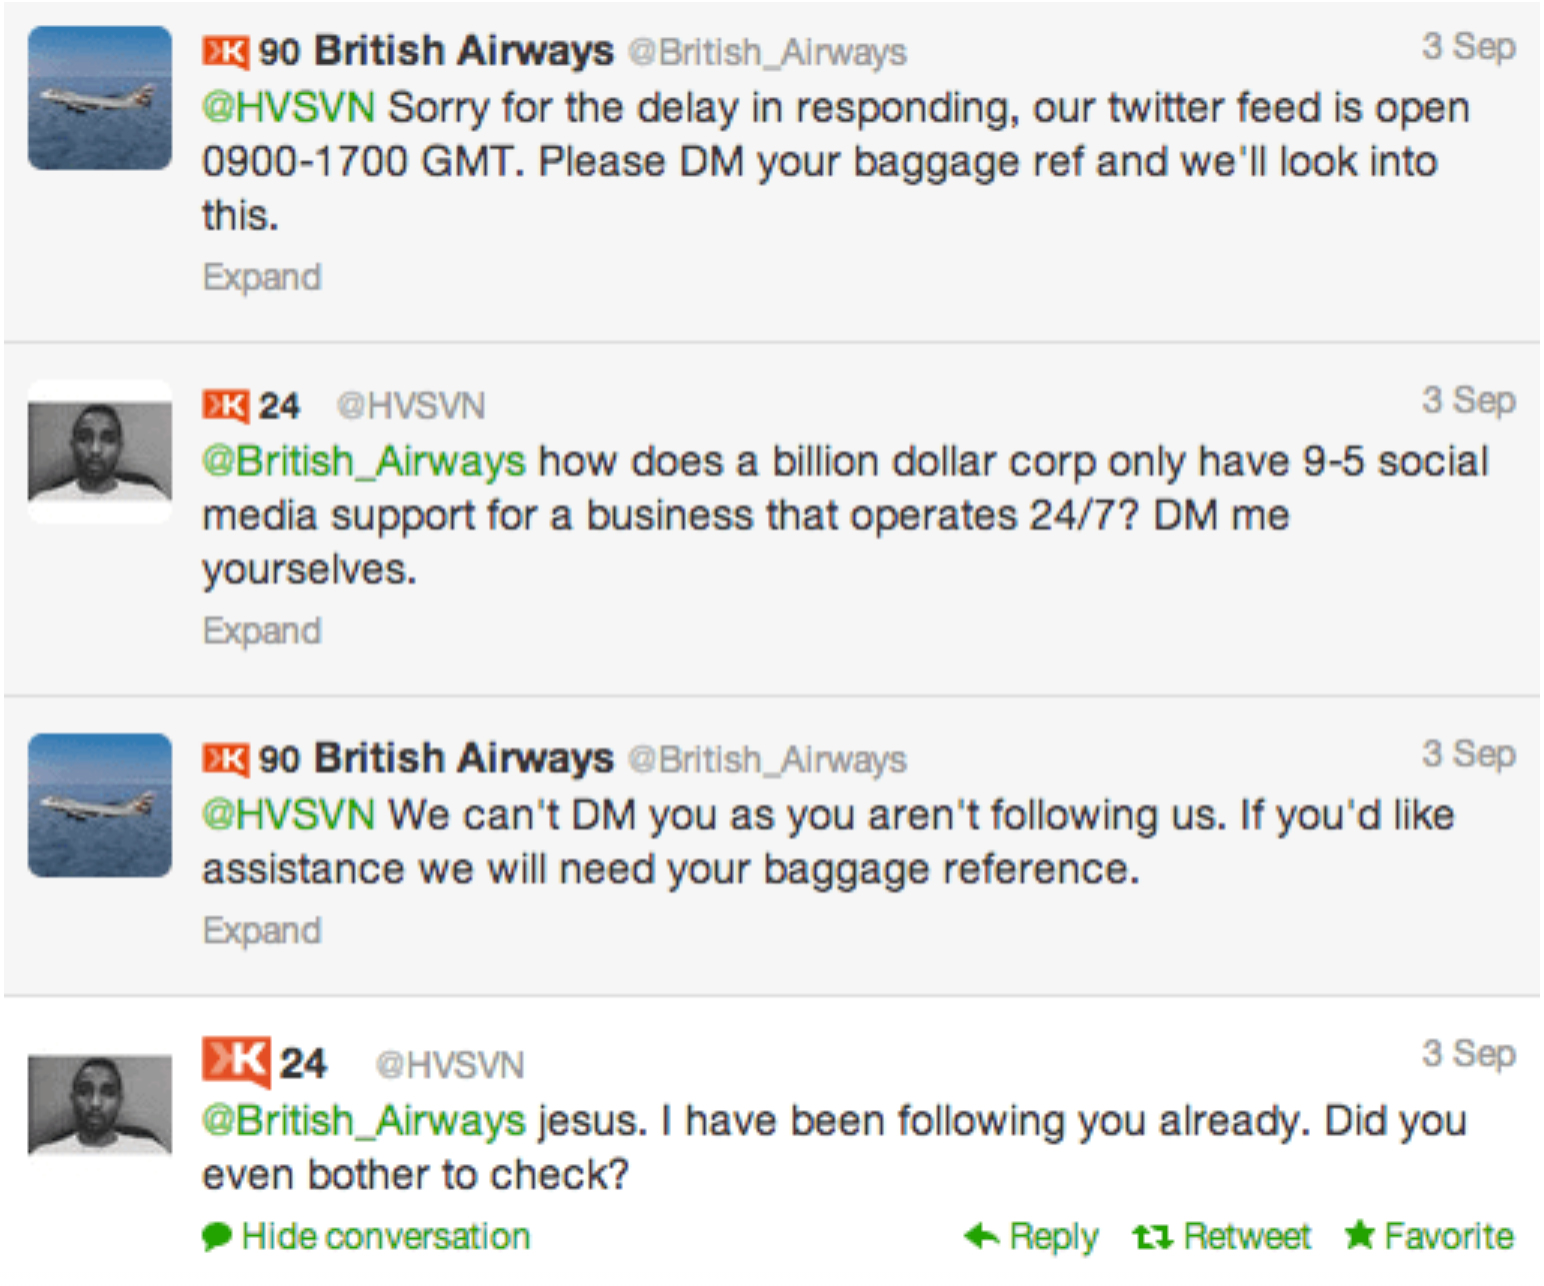 Negative interaction between British Airways and a customer on social media